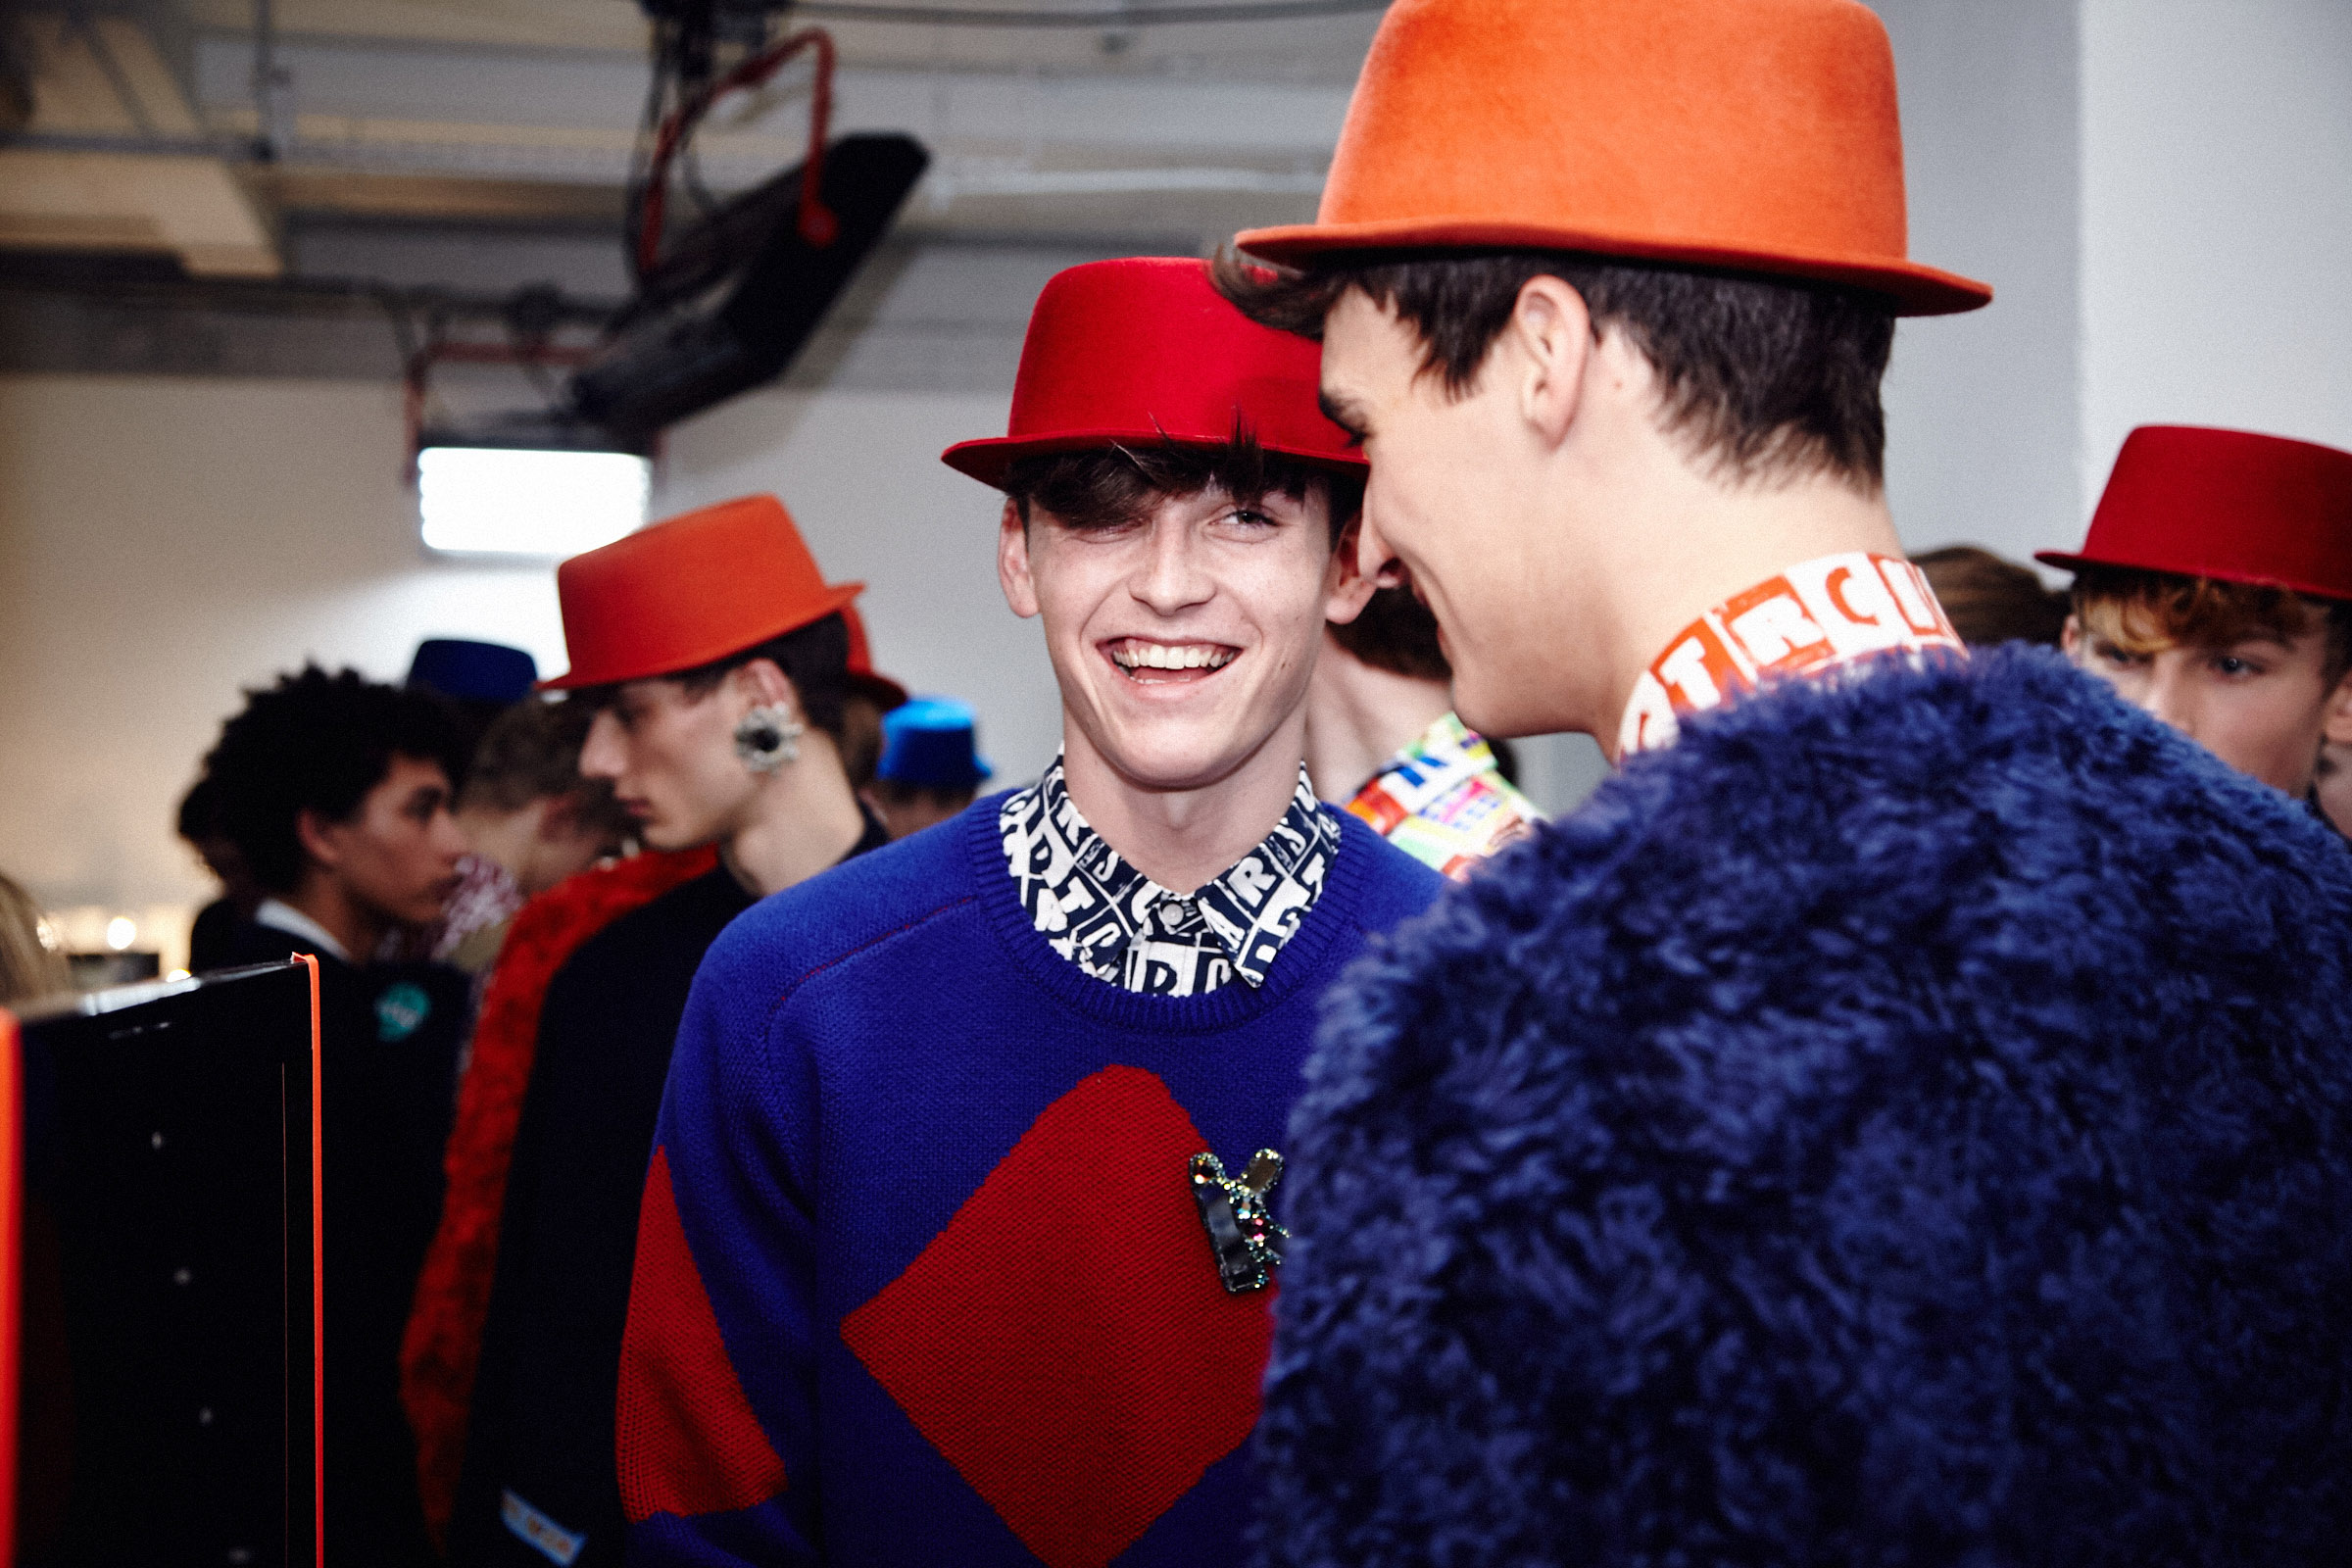 KIT NEALE 2015 Autumn Winter Backstage © CHASSEUR MAGAZINE